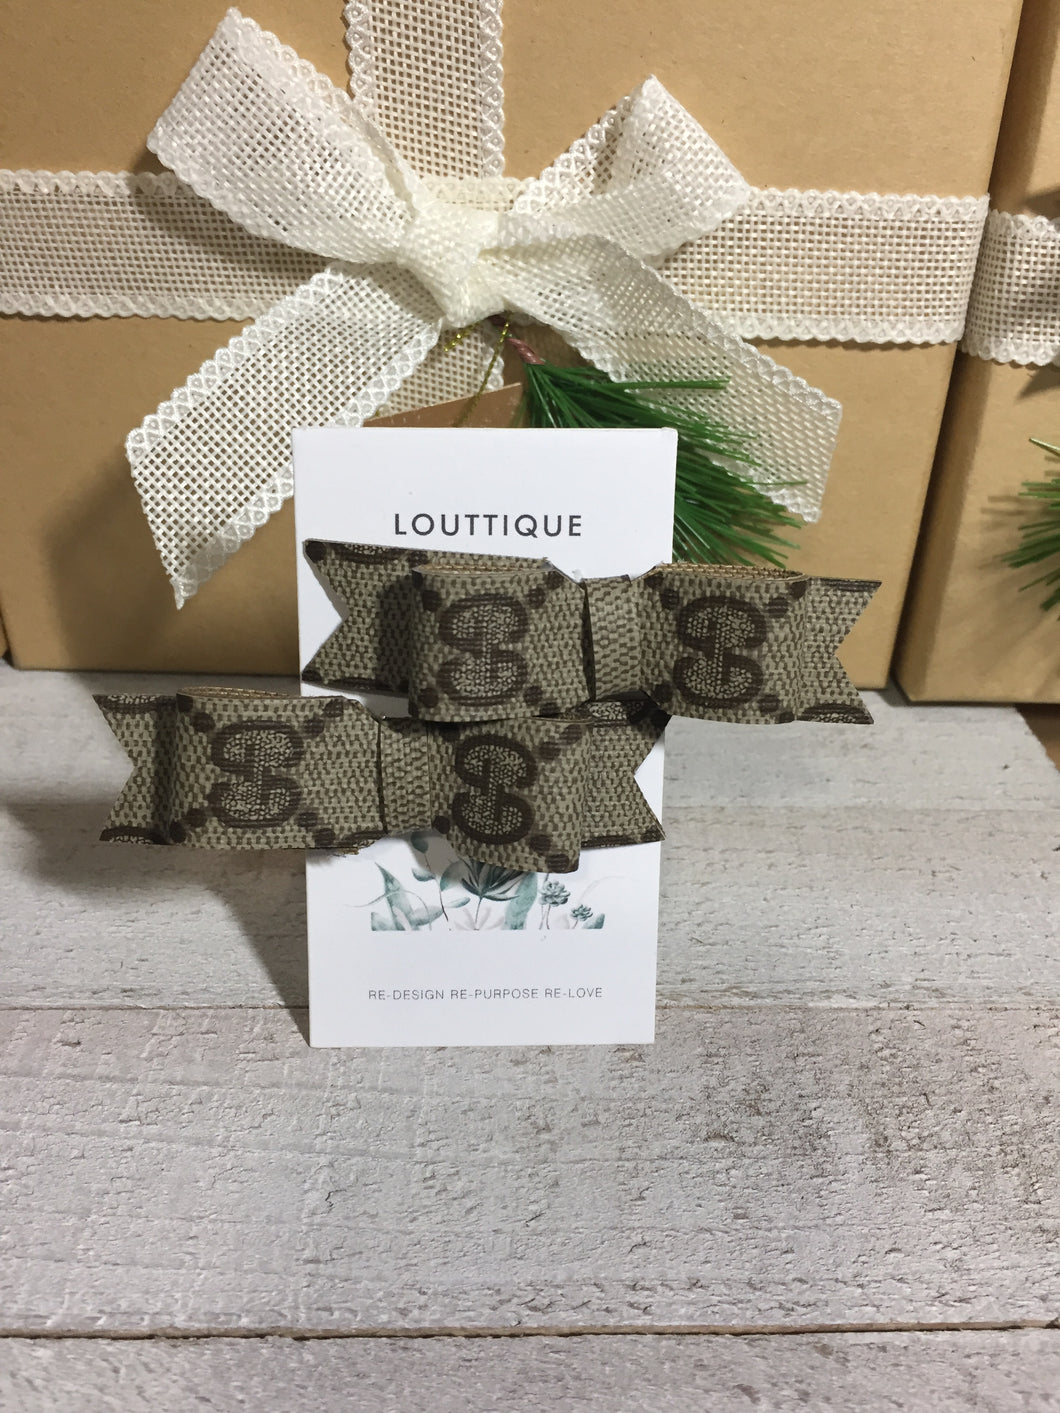 GUCCI Upcycled Hair Bows/Clips